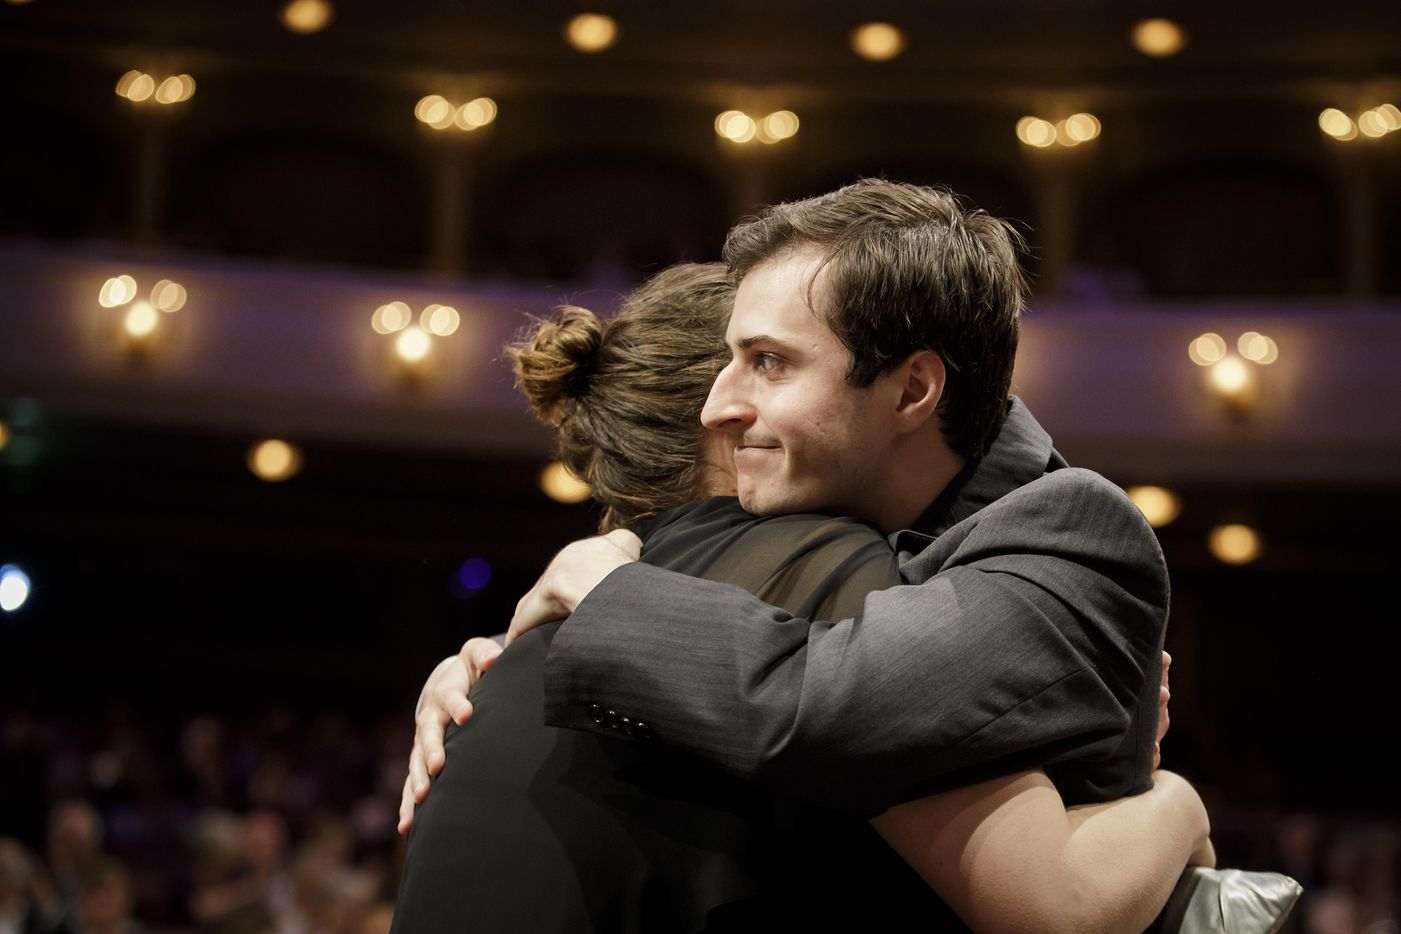 Sliver medalist Kenneth Broberg of the USA celebrates after his award was announced during the Van Cliburn International Piano Competition awards ceremony at the Bass Performance Hall in Fort Worth on Saturday, June 10, 2017. (Smiley N. Pool/The Dallas Morning News)